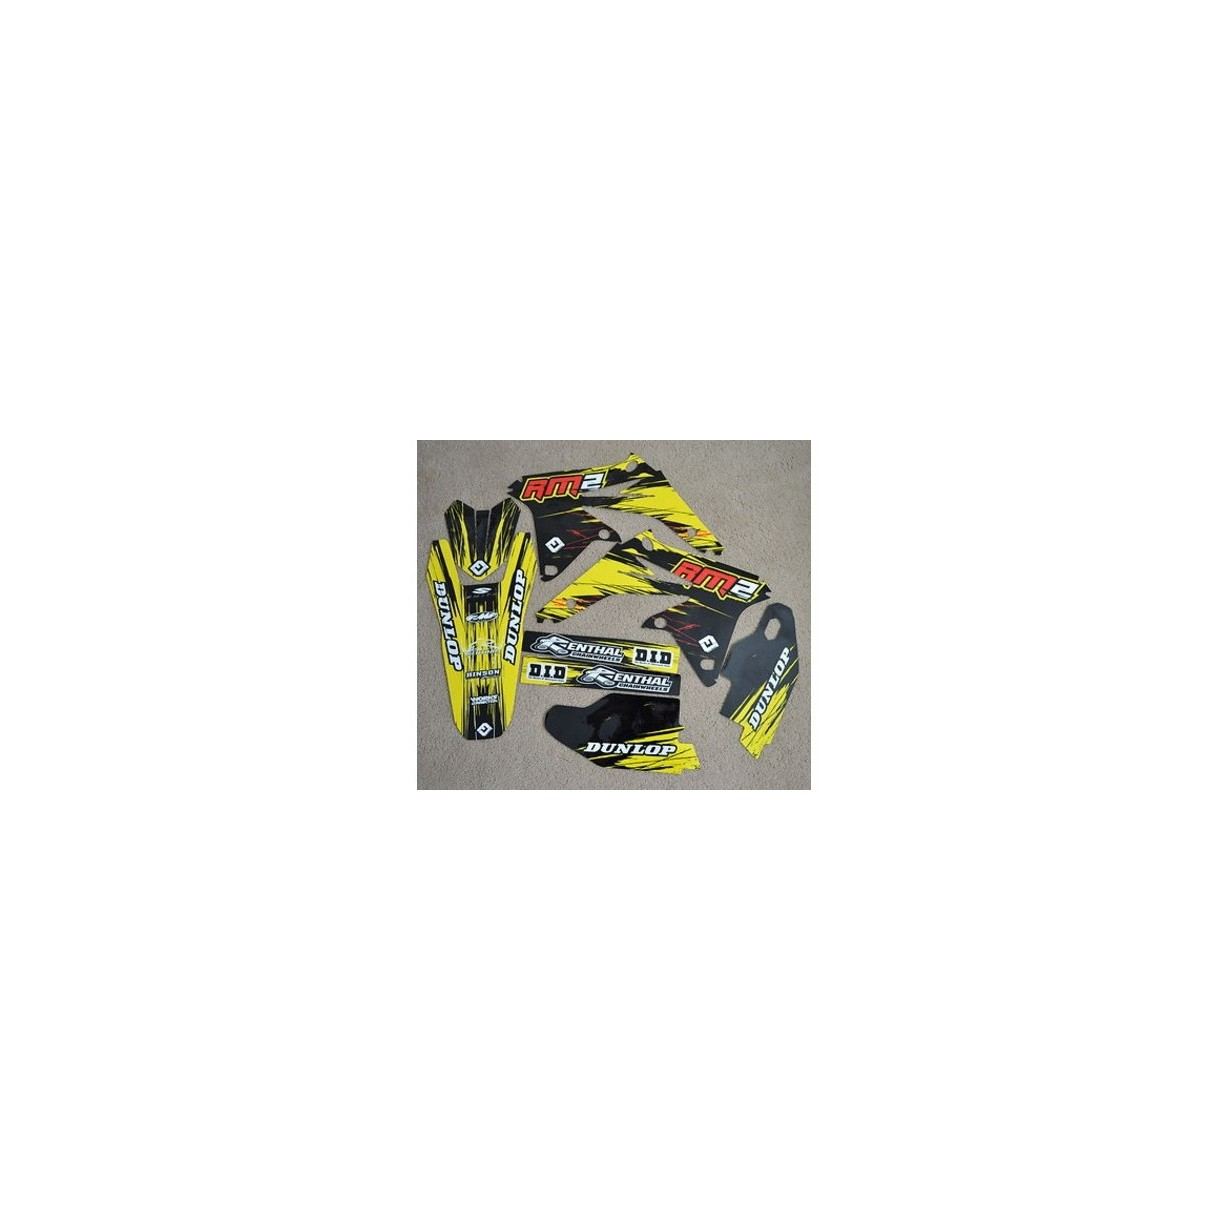 Kit Déco 450 RMZ 08-16 PRO TEAM SERIES (REFSZ8328)